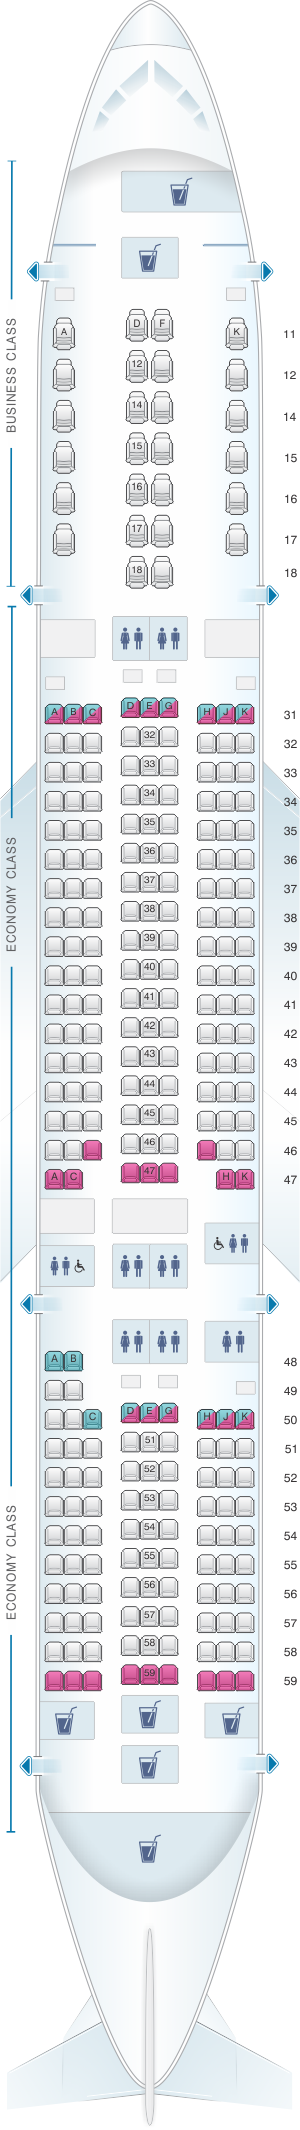 Seat map for Singapore Airlines Boeing B777 200ER refitted layout